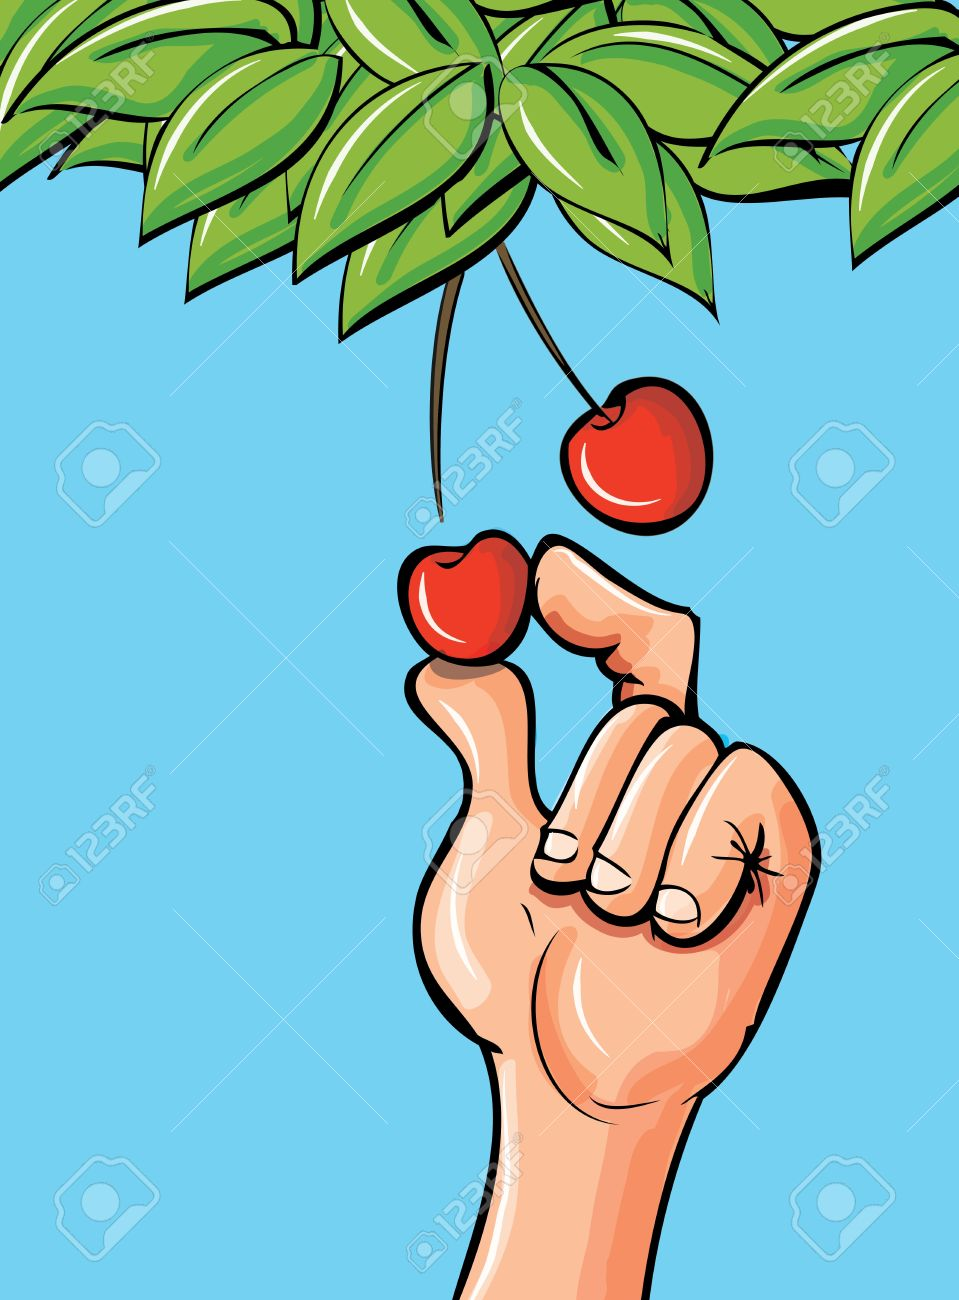 Cartoon Hand Picking A Cherry Of A Leafy Branch Royalty Free.